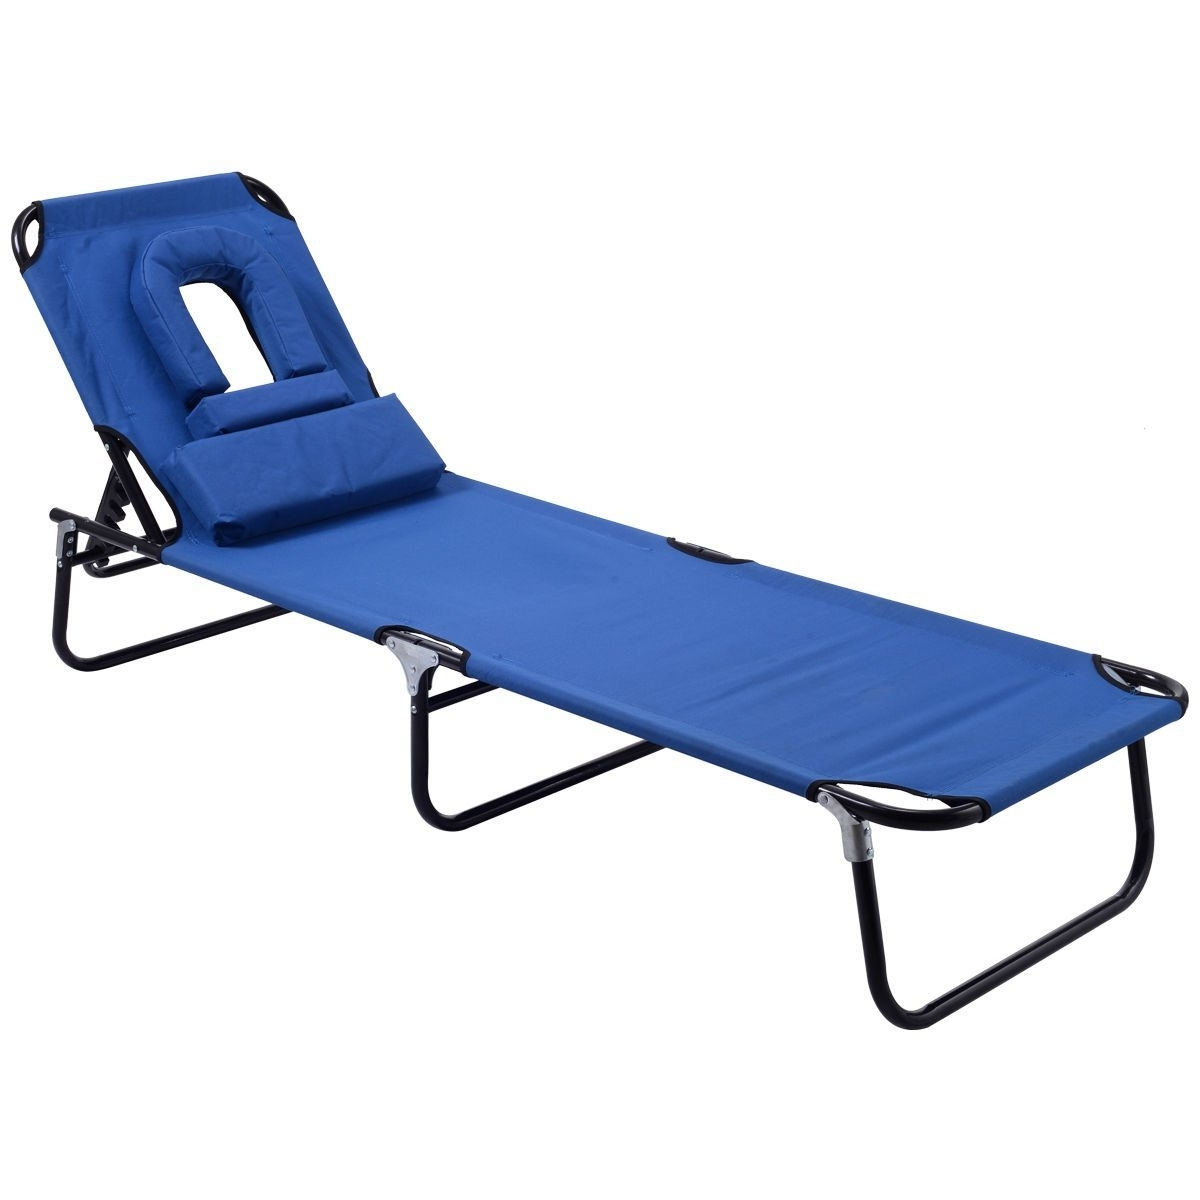 Amazon: Goplus Folding Chaise Lounge Chair Bed Outdoor Patio Regarding Most Recent Chaise Lounge Chairs With Face Hole (View 1 of 15)